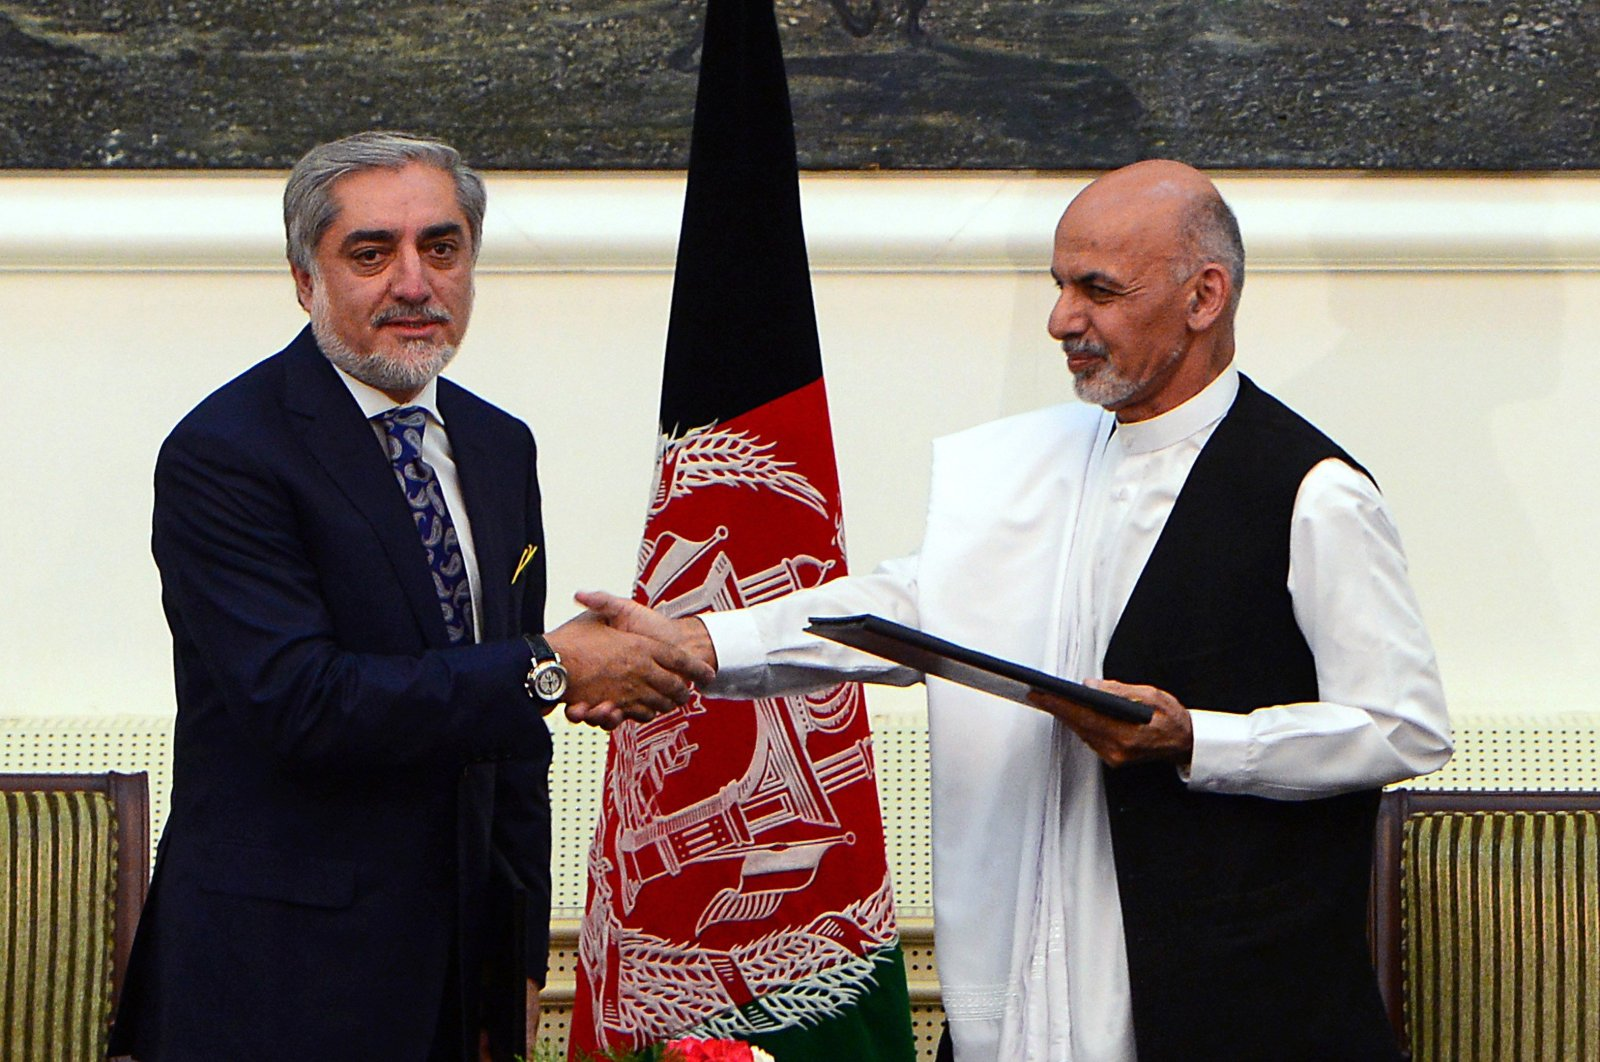 In this file photo, Afghan presidential candidates Abdullah Abdullah (L) and Ashraf Ghani Ahmadzai shake hands after signing a power-sharing agreement at the Presidential Palace in Kabul on Sept. 21, 2014. (AFP Photo)